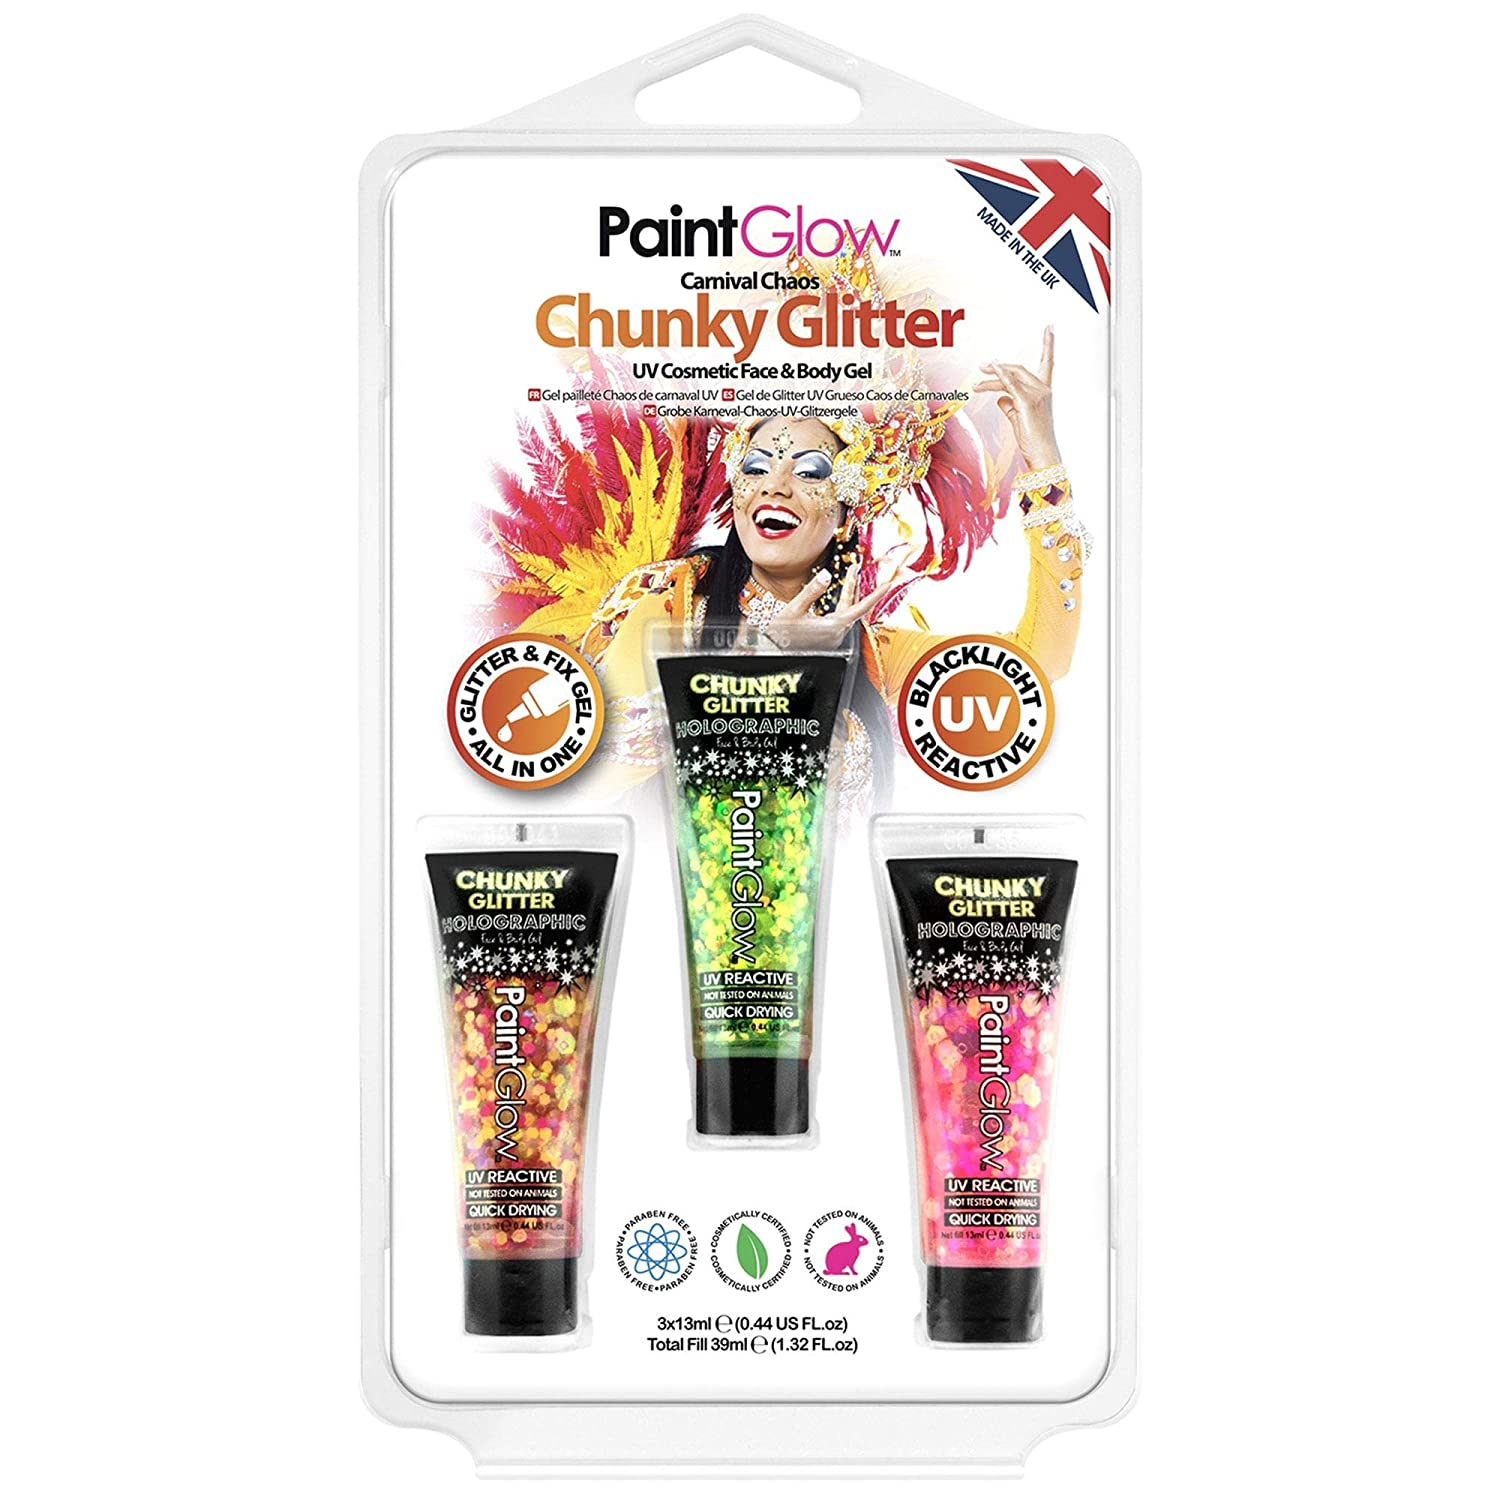 PaintGlow Carnival Chaos UV Chunky Glitter Face and Body Gel